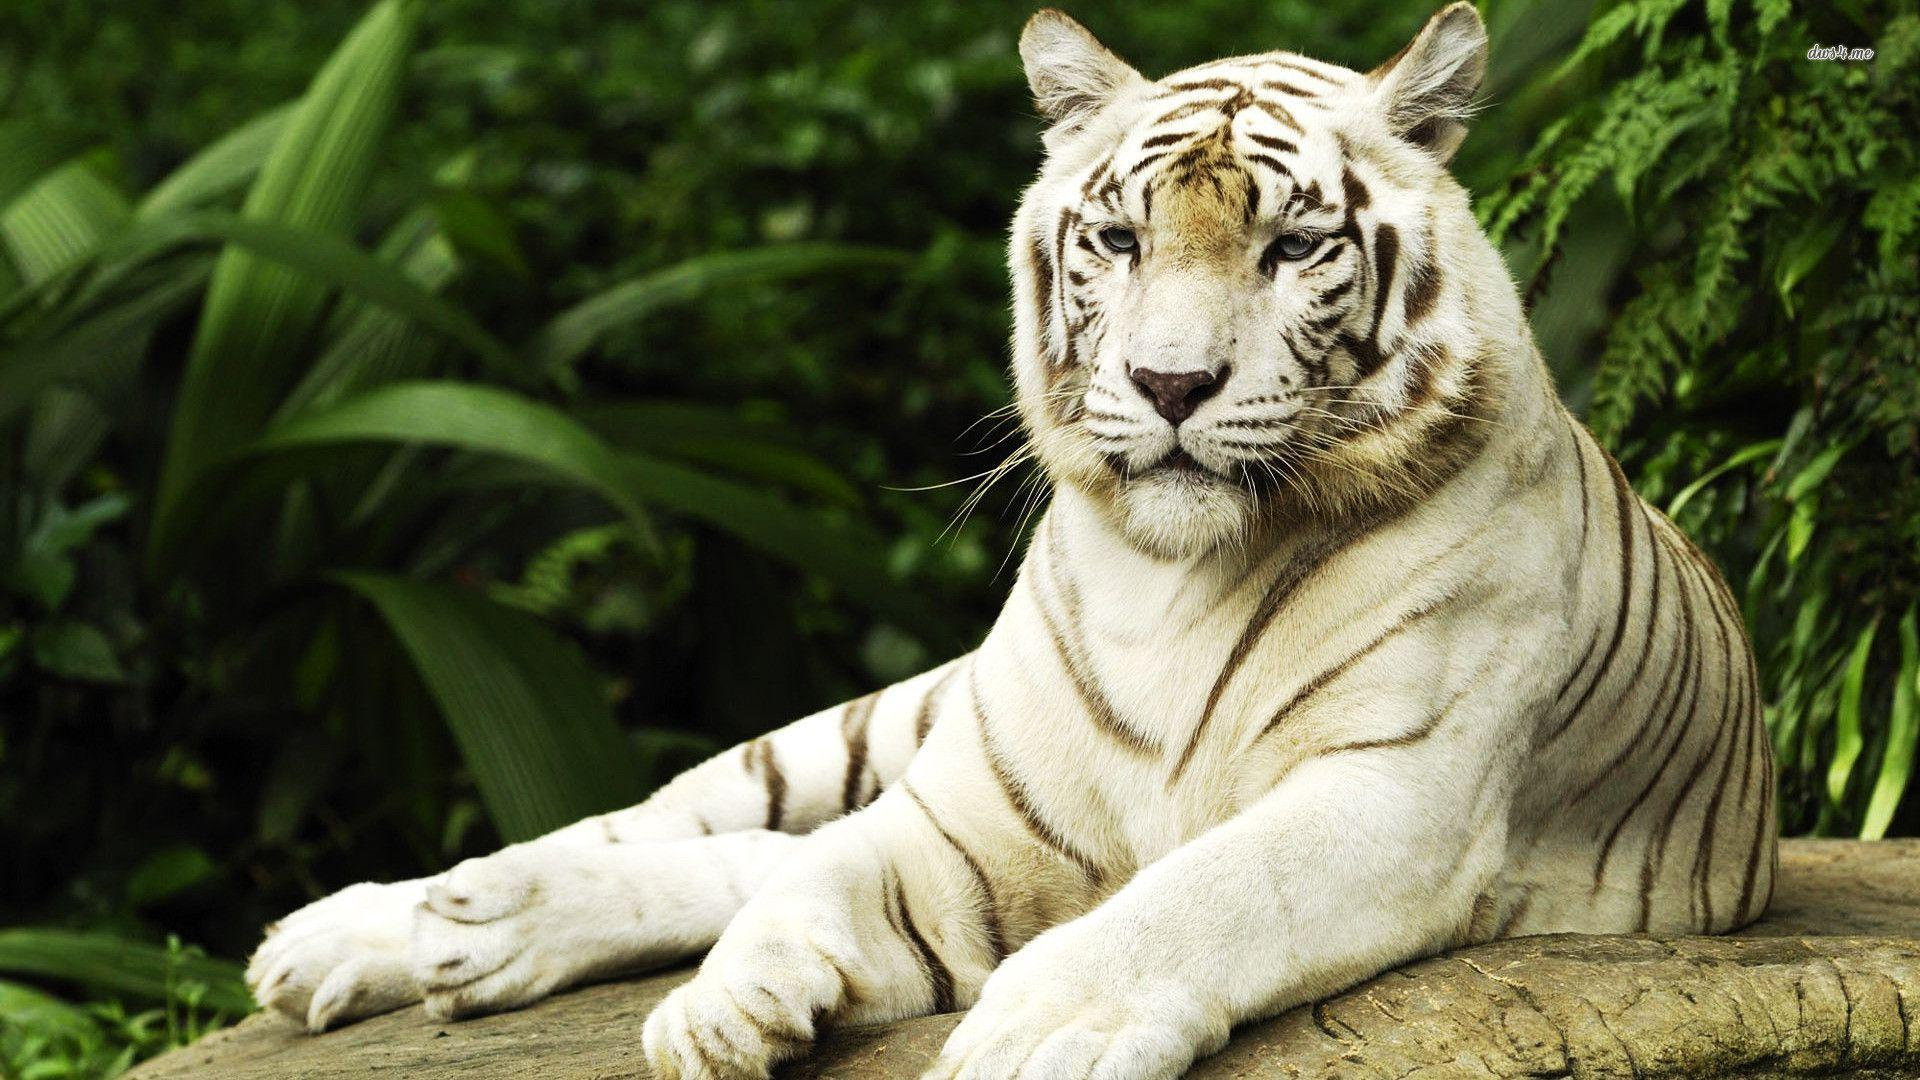 wallpaper hd white tiger - photo #8